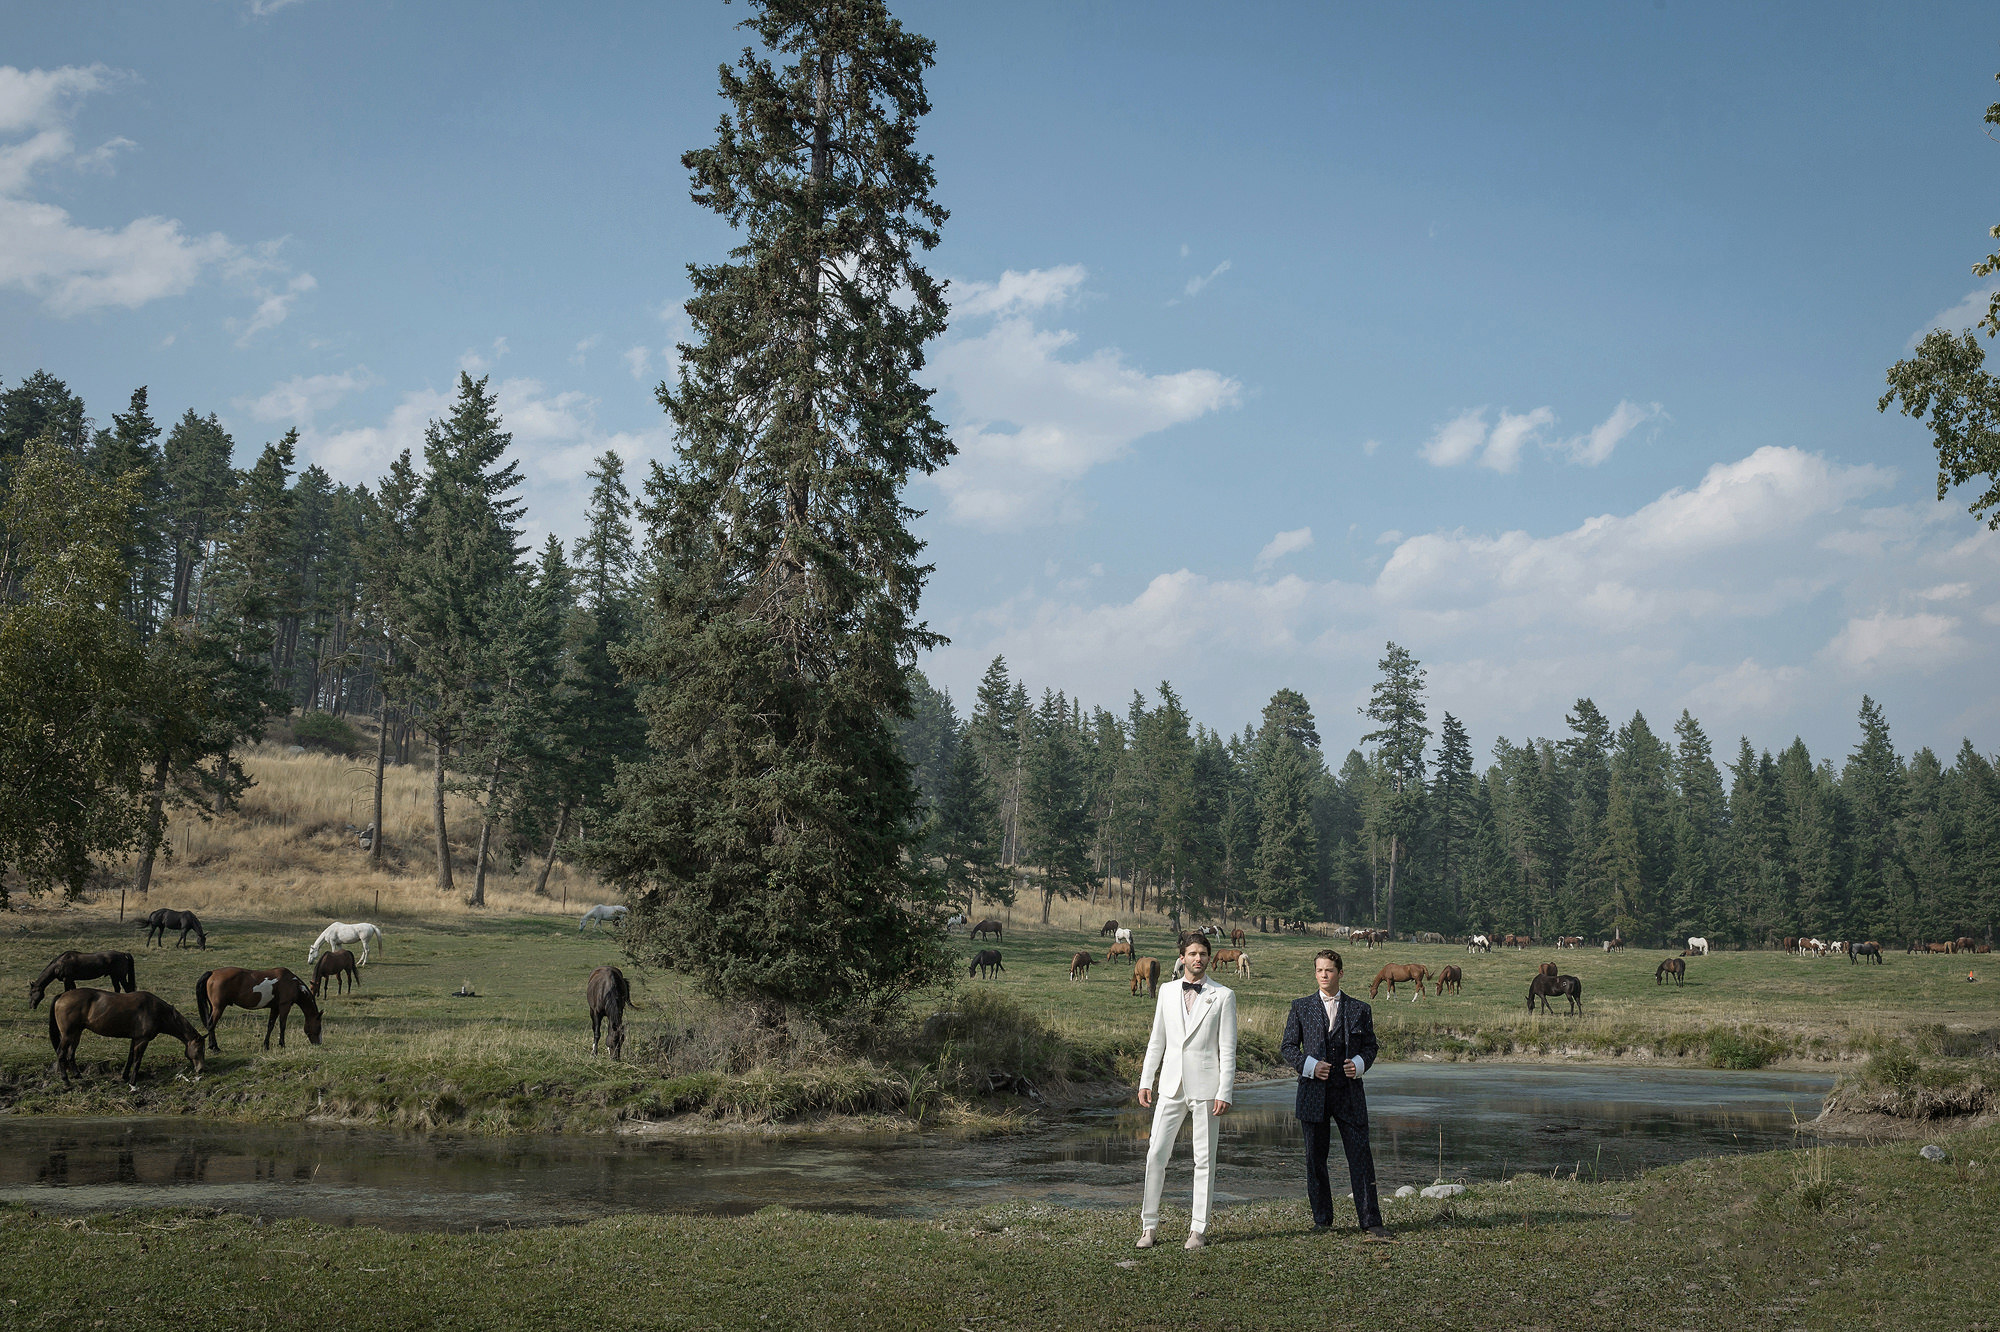 grooms-in-landscape-with-horses-worlds-best-wedding-photos-37-frames-japan-wedding-photographers